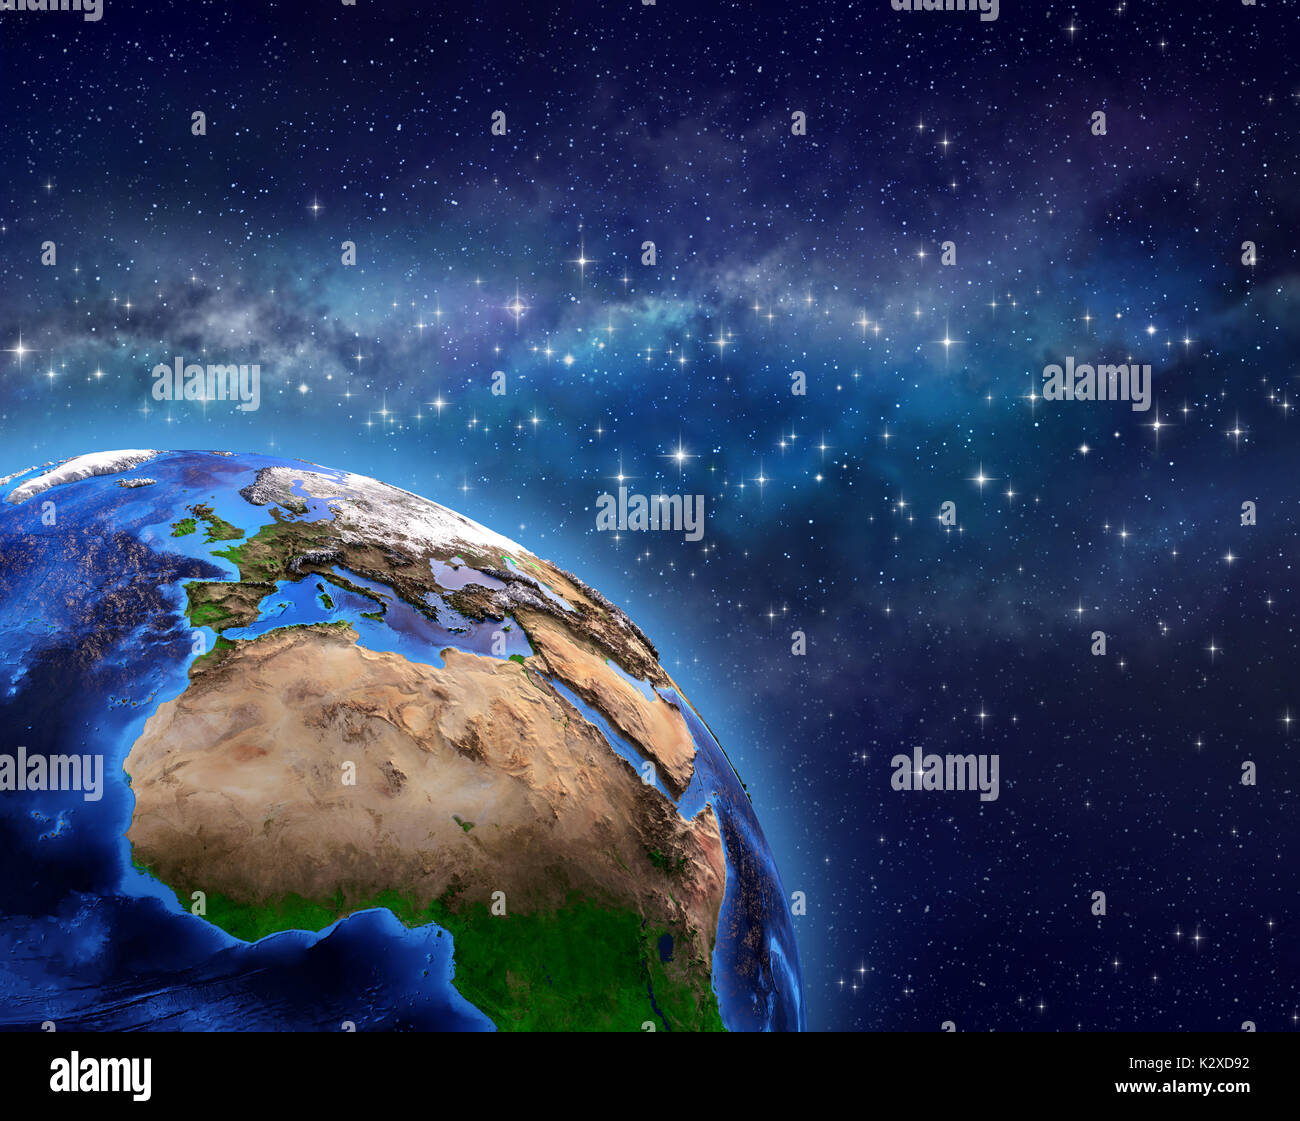 Planet Earth in deep space, star cluster and milky way far behind - 3D illustration - Elements of this image furnished by NASA - Stock Image